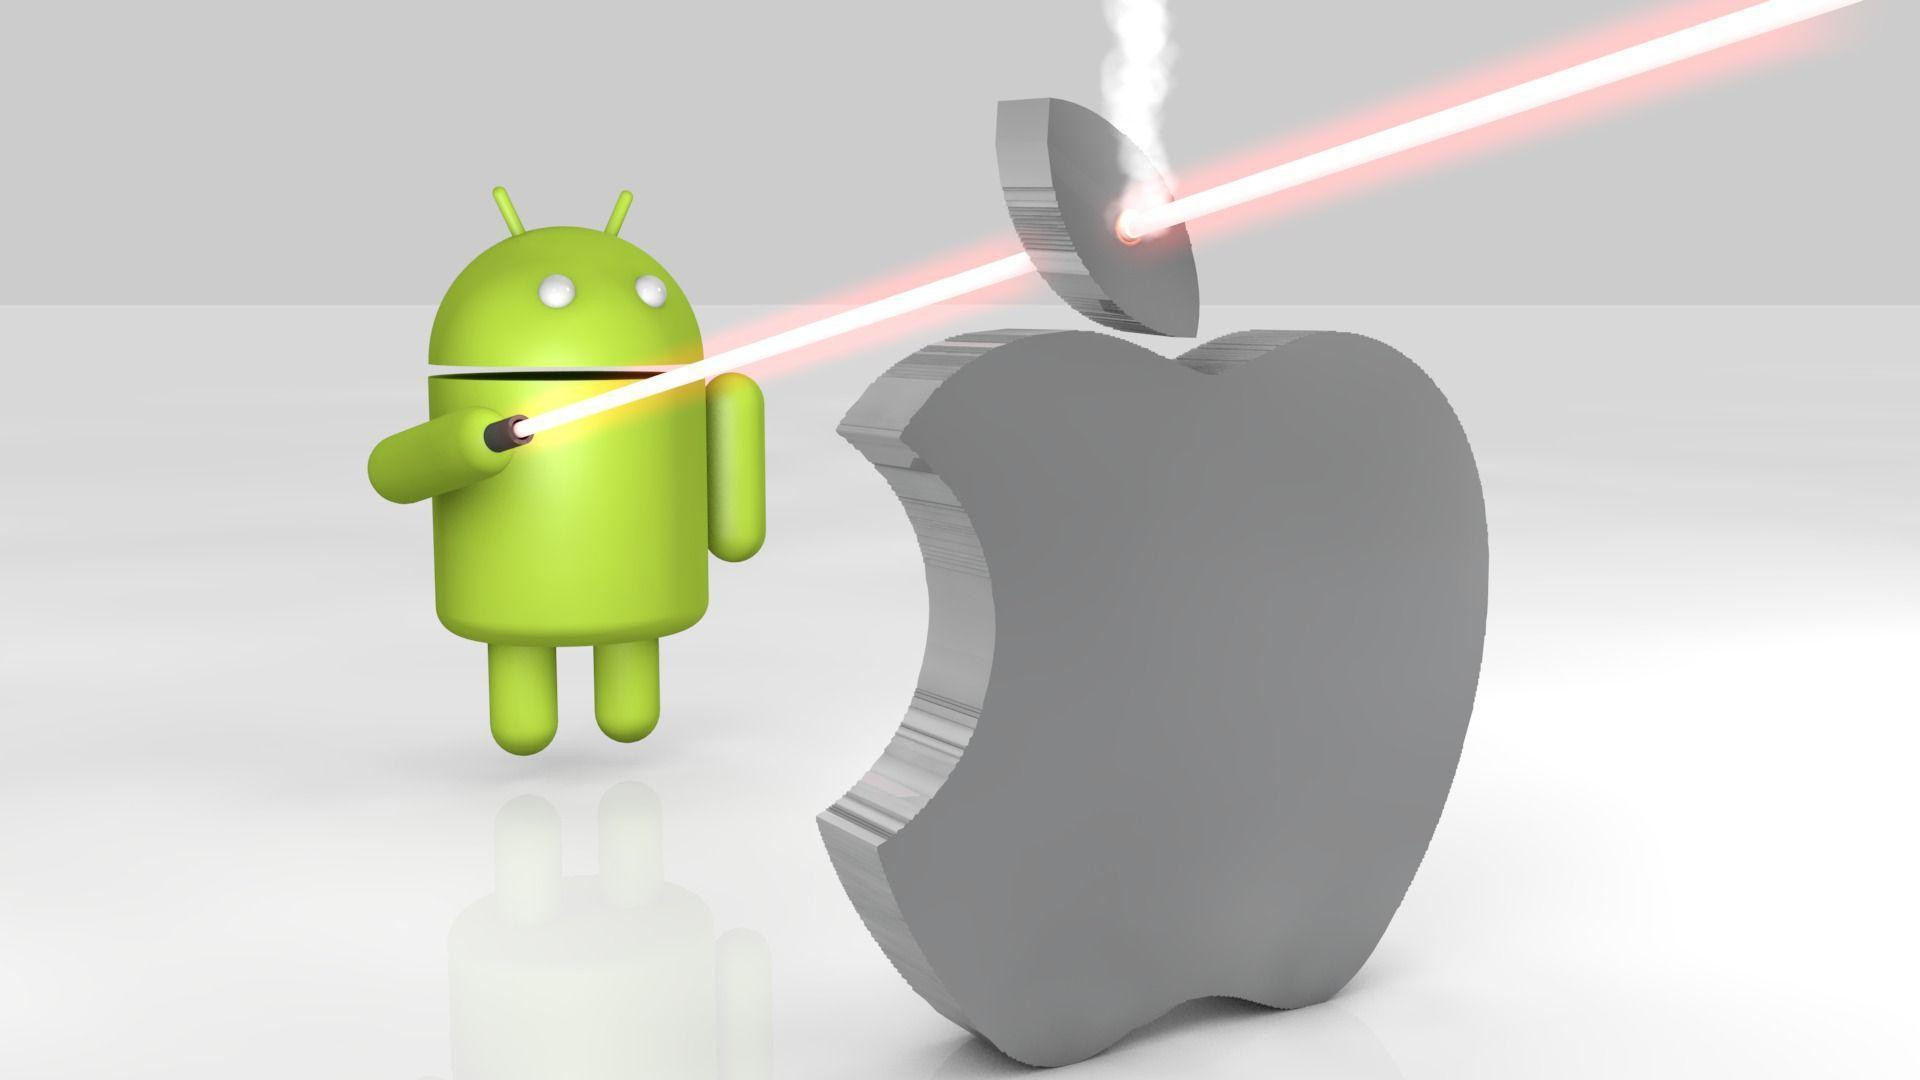 Android Vs Apple HD Wallpapers Wallpapers computer